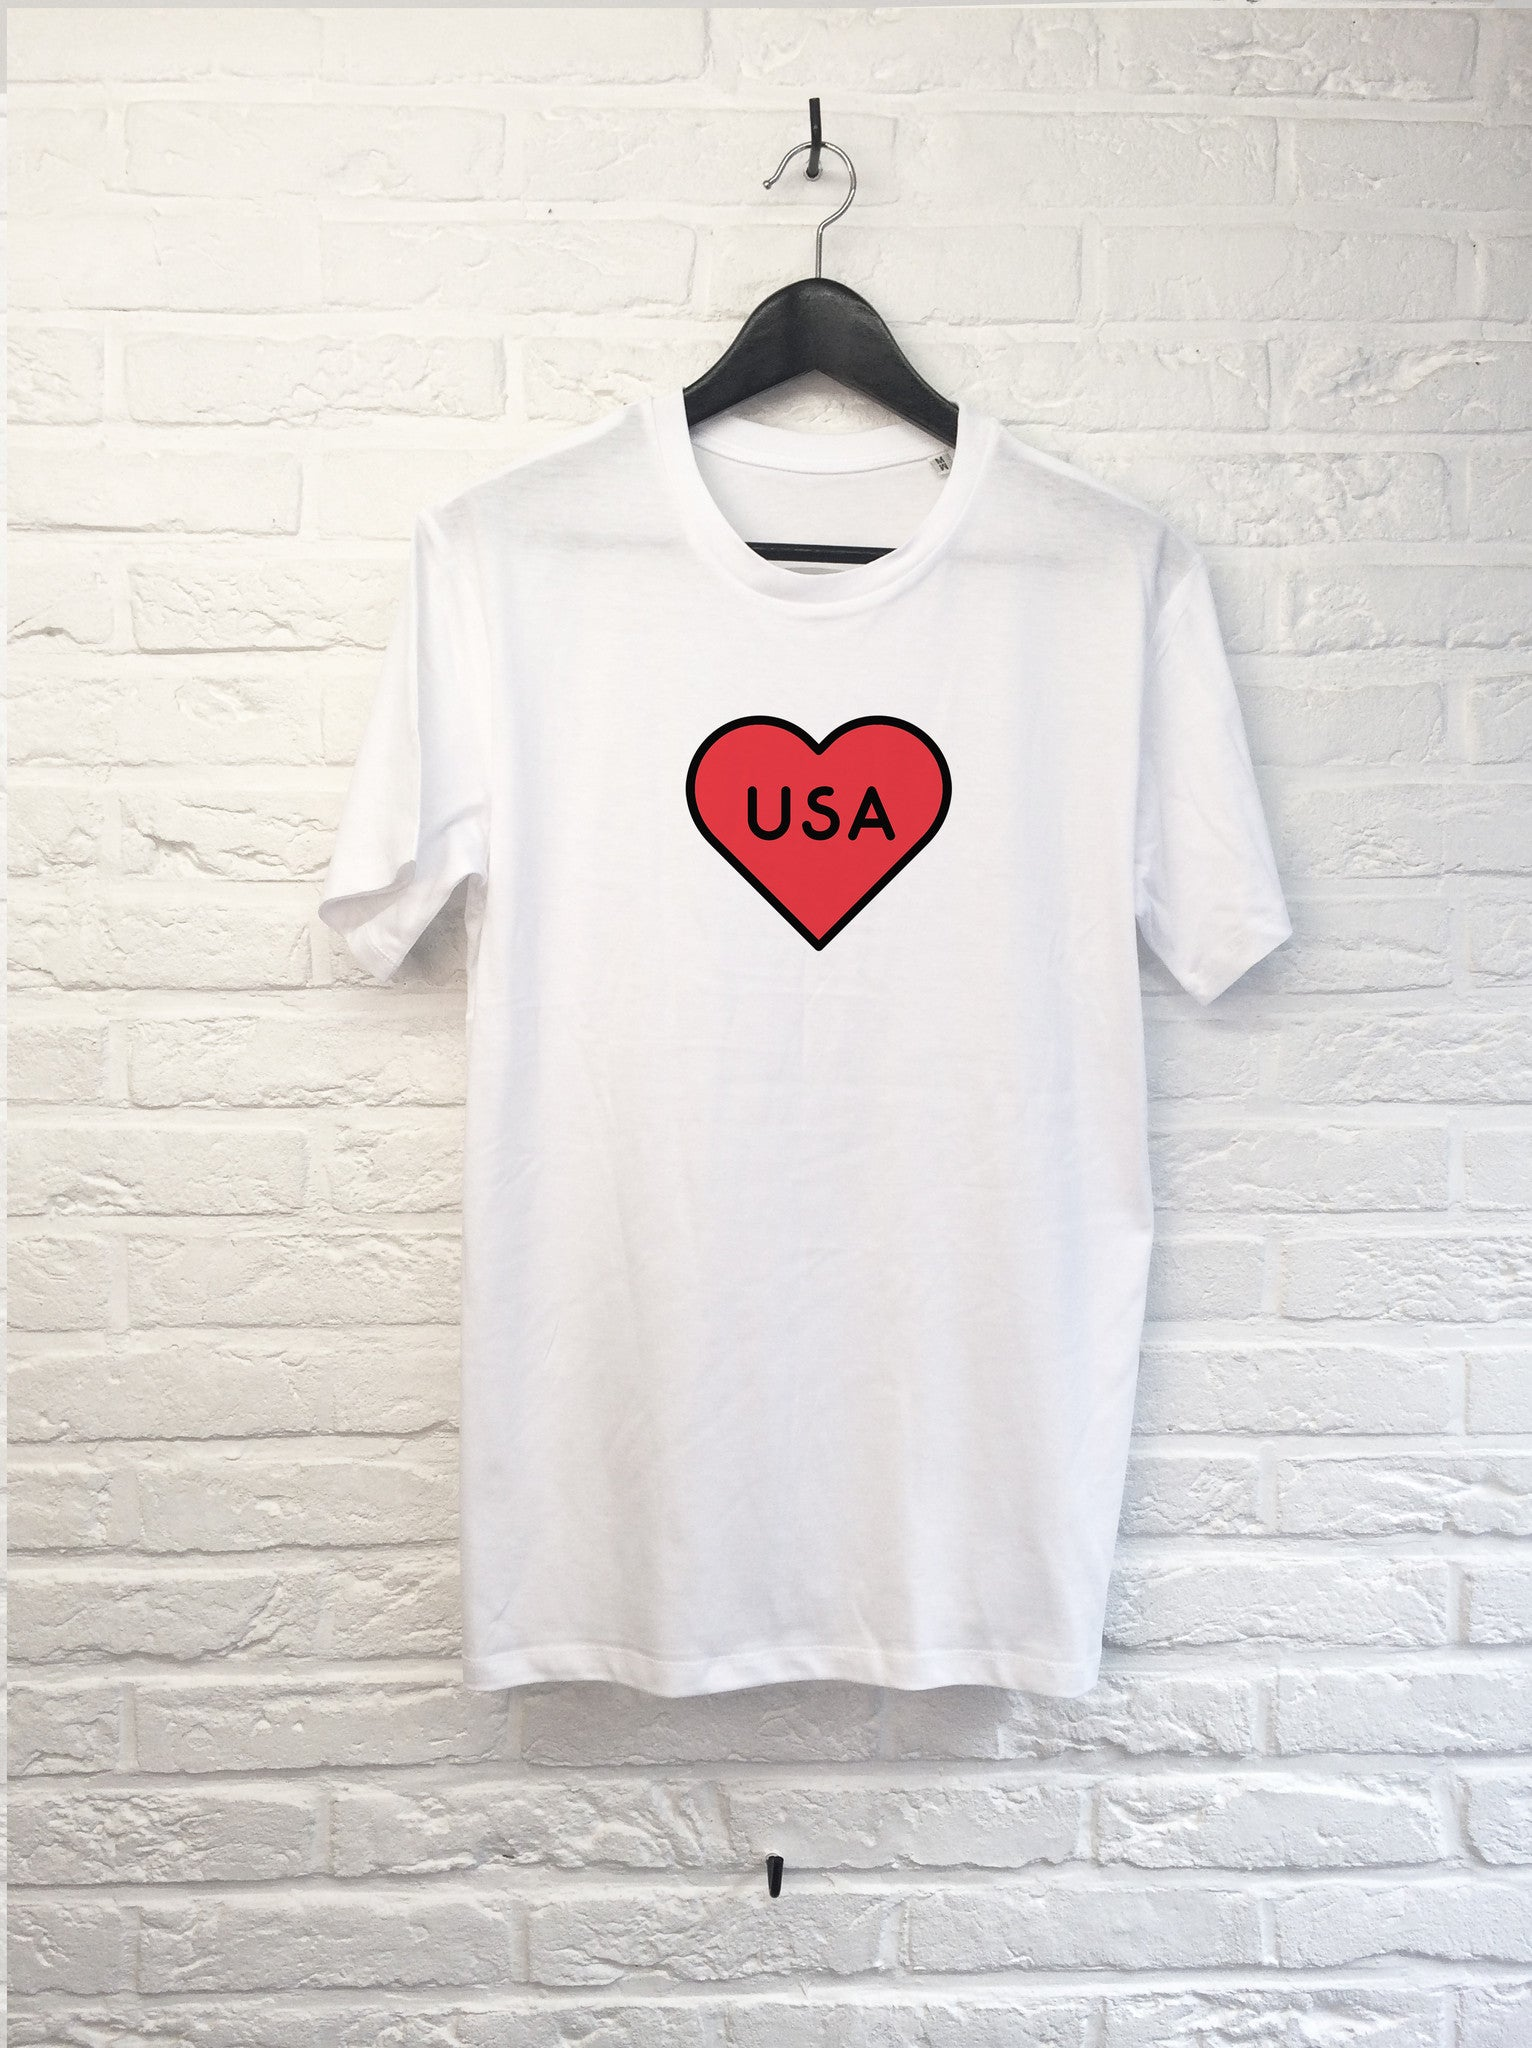 USA Heart-T shirt-Atelier Amelot